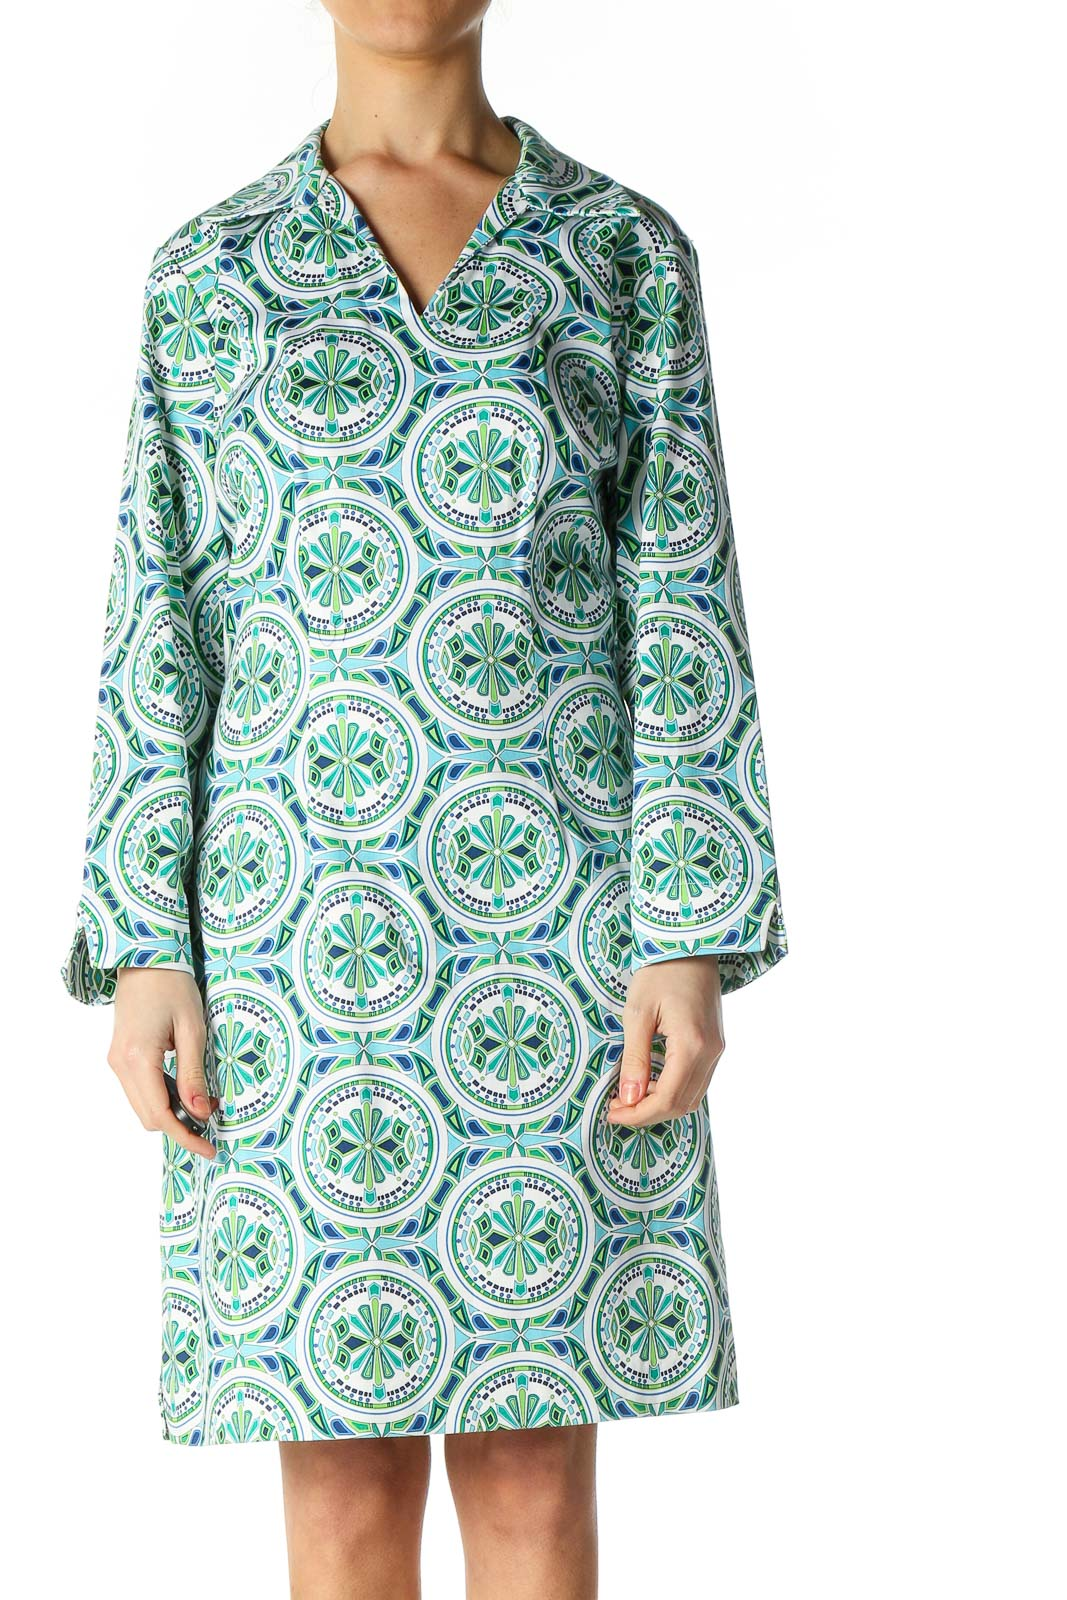 White Paisley Bohemian Shift Dress Front